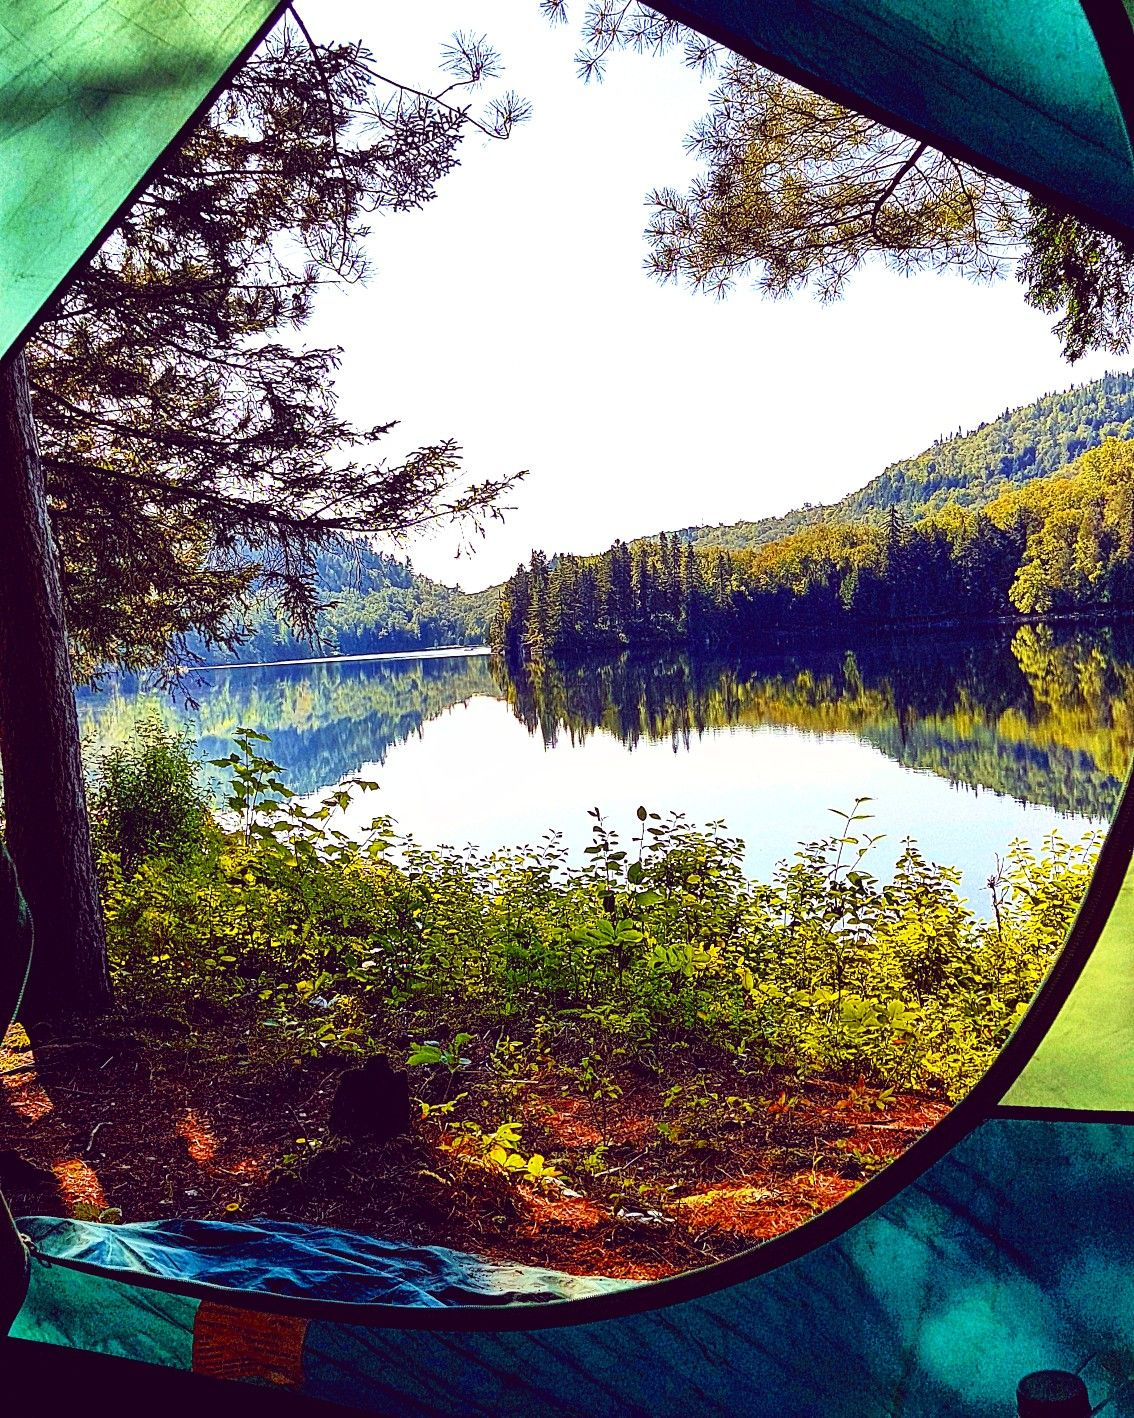 Tent Wildlife Landscape Camping Lake Nature Forest Wood Trees Amazing Wow Mountains Goodvibes Zen Calm Canada Landscape Nature Lake